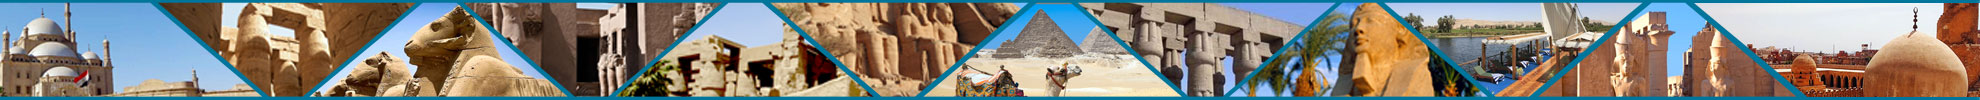 Egypt Panorama Tour Package